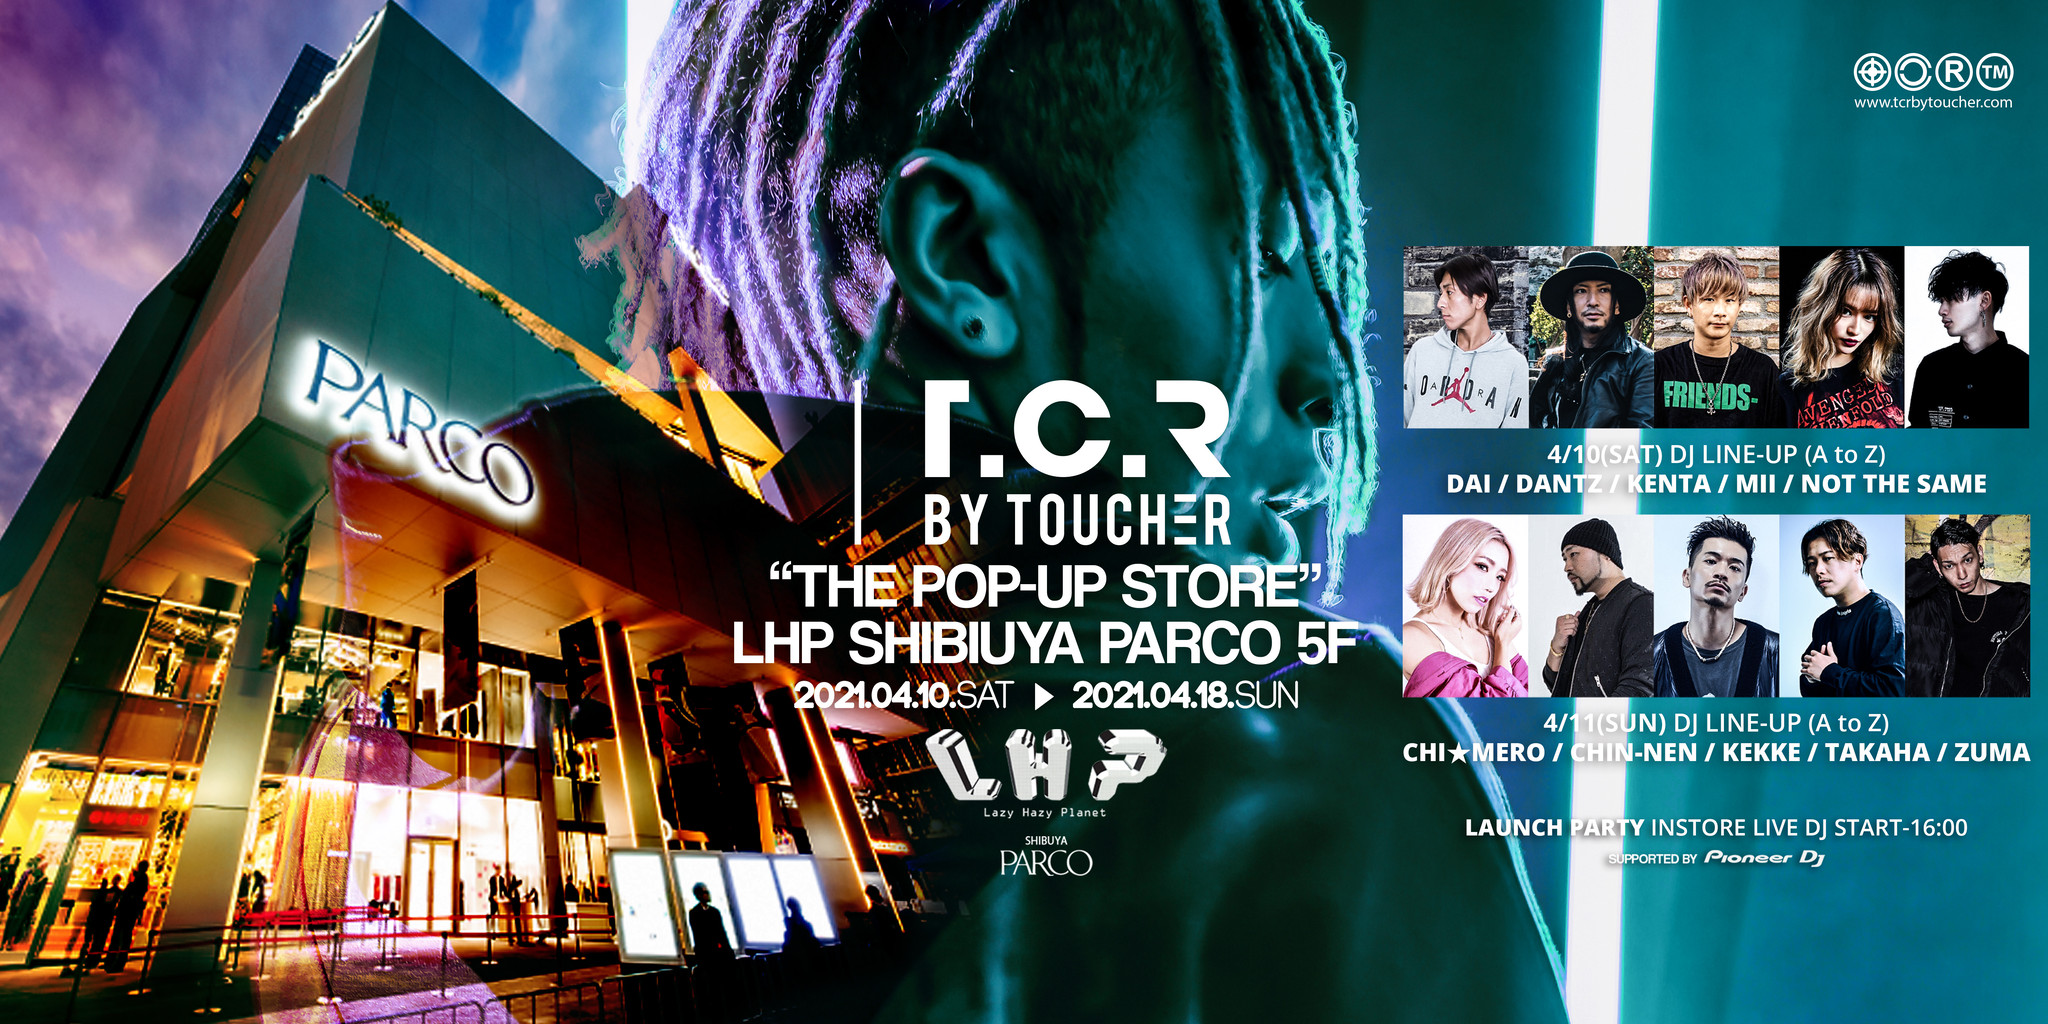 2021.04.10.SAT - THE POP-UP STORE LHP渋谷PARCO店にて開催